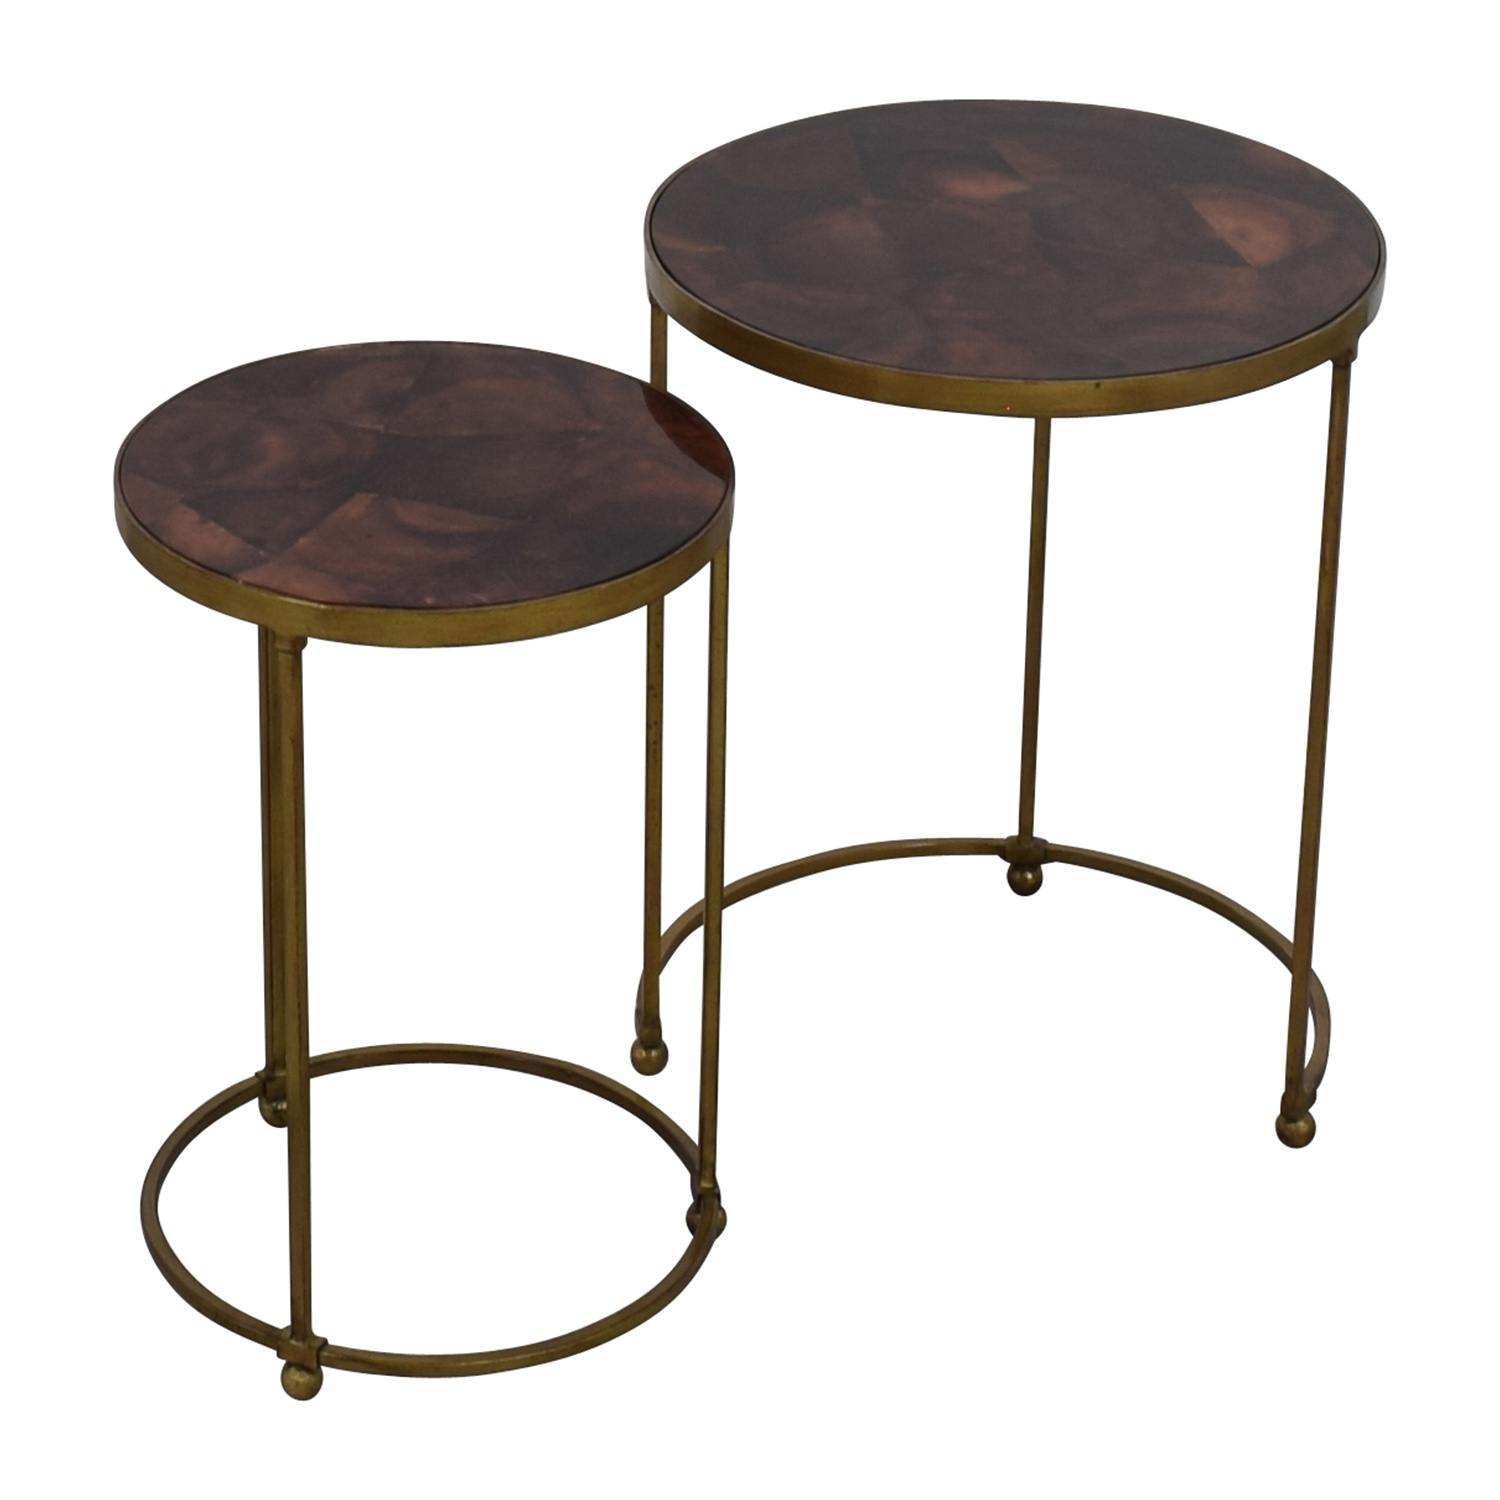 ABC Carpet and Home ABC Carpet & Home Nesting Round Bronze and Brass Accent Tables used